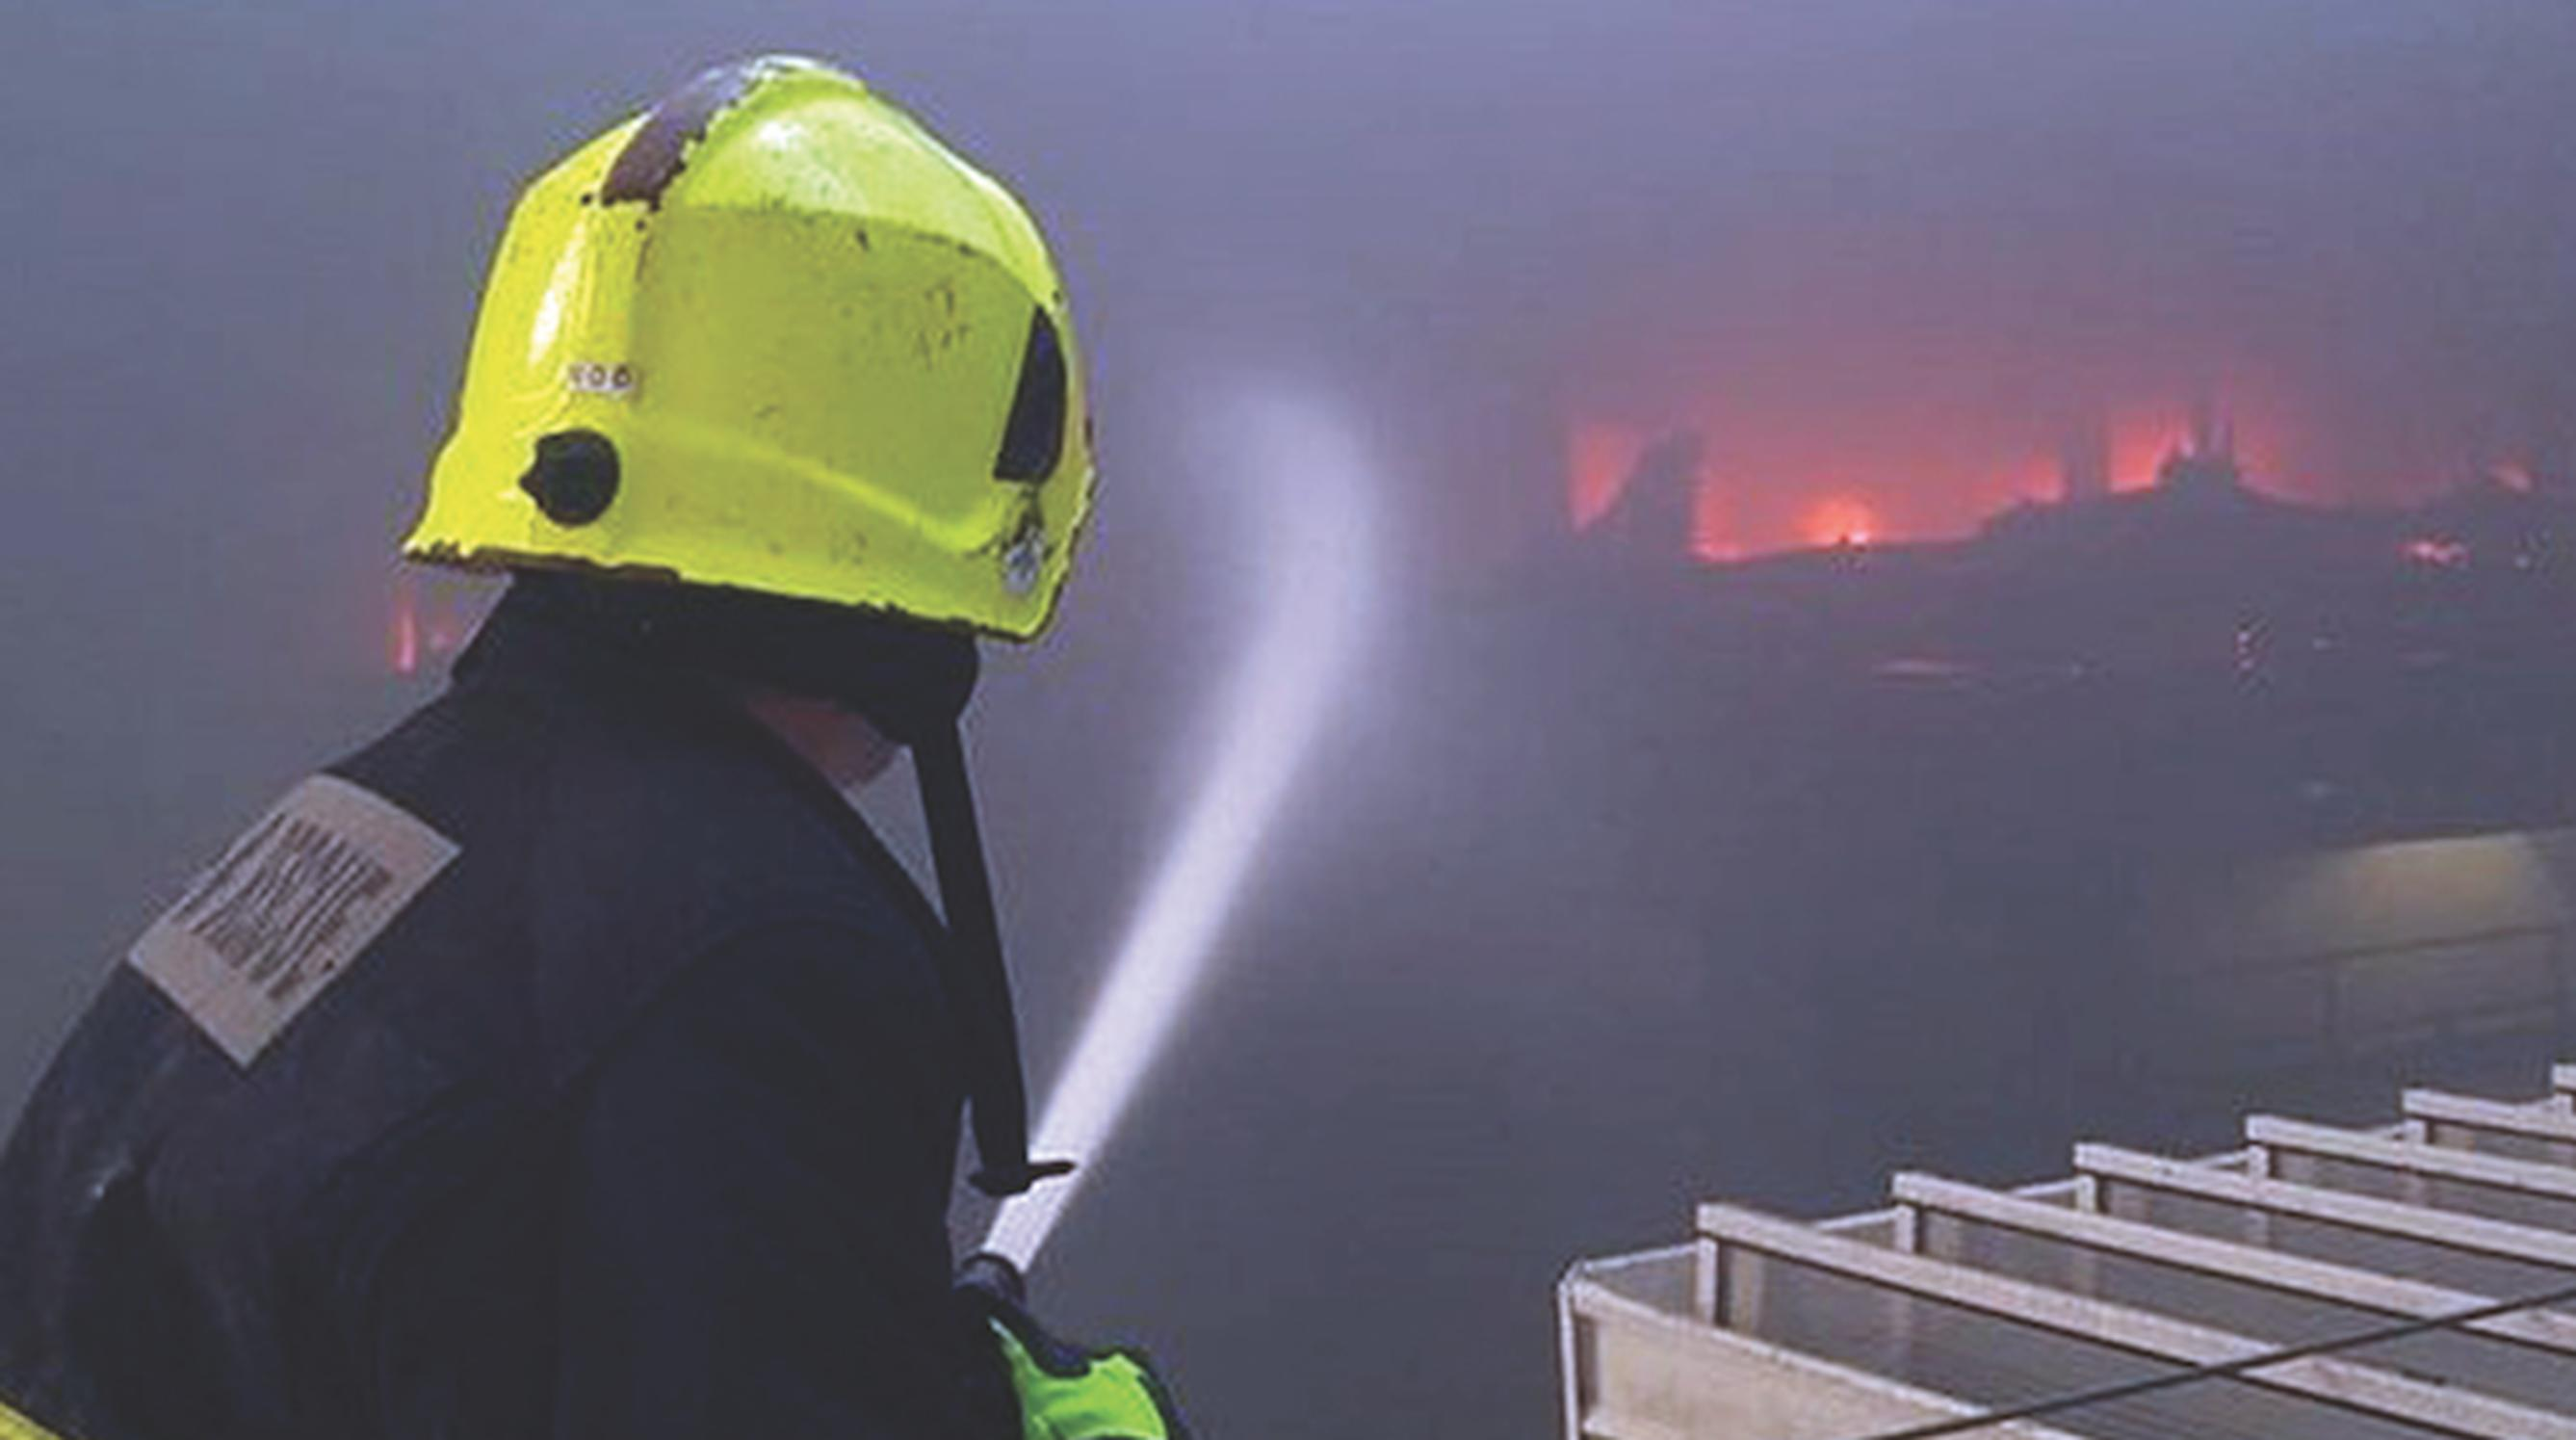 A fire fighter tackles a blaze at a car park in Cork in 2019 (Cork Fire Service)